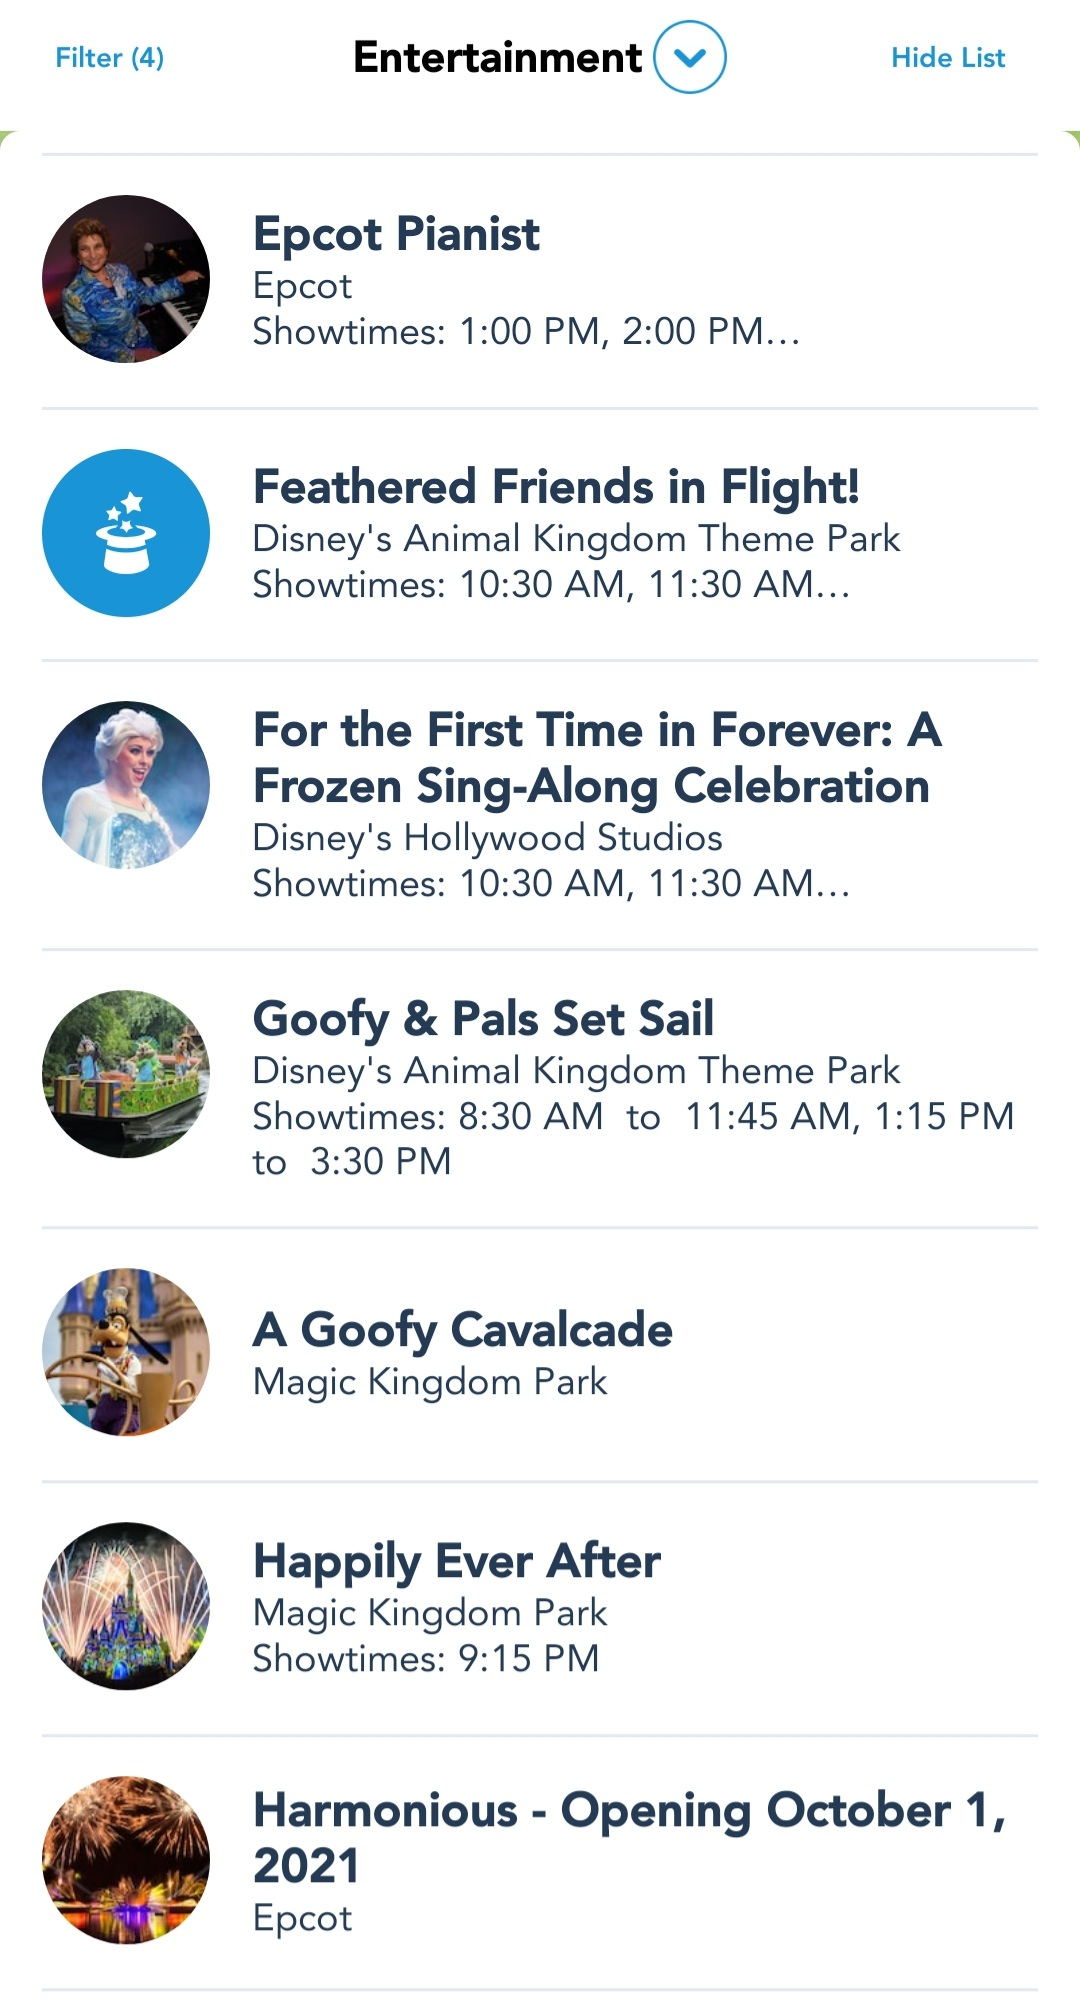 My Disney Experience App now lists Character Cavalcade Show Times 8